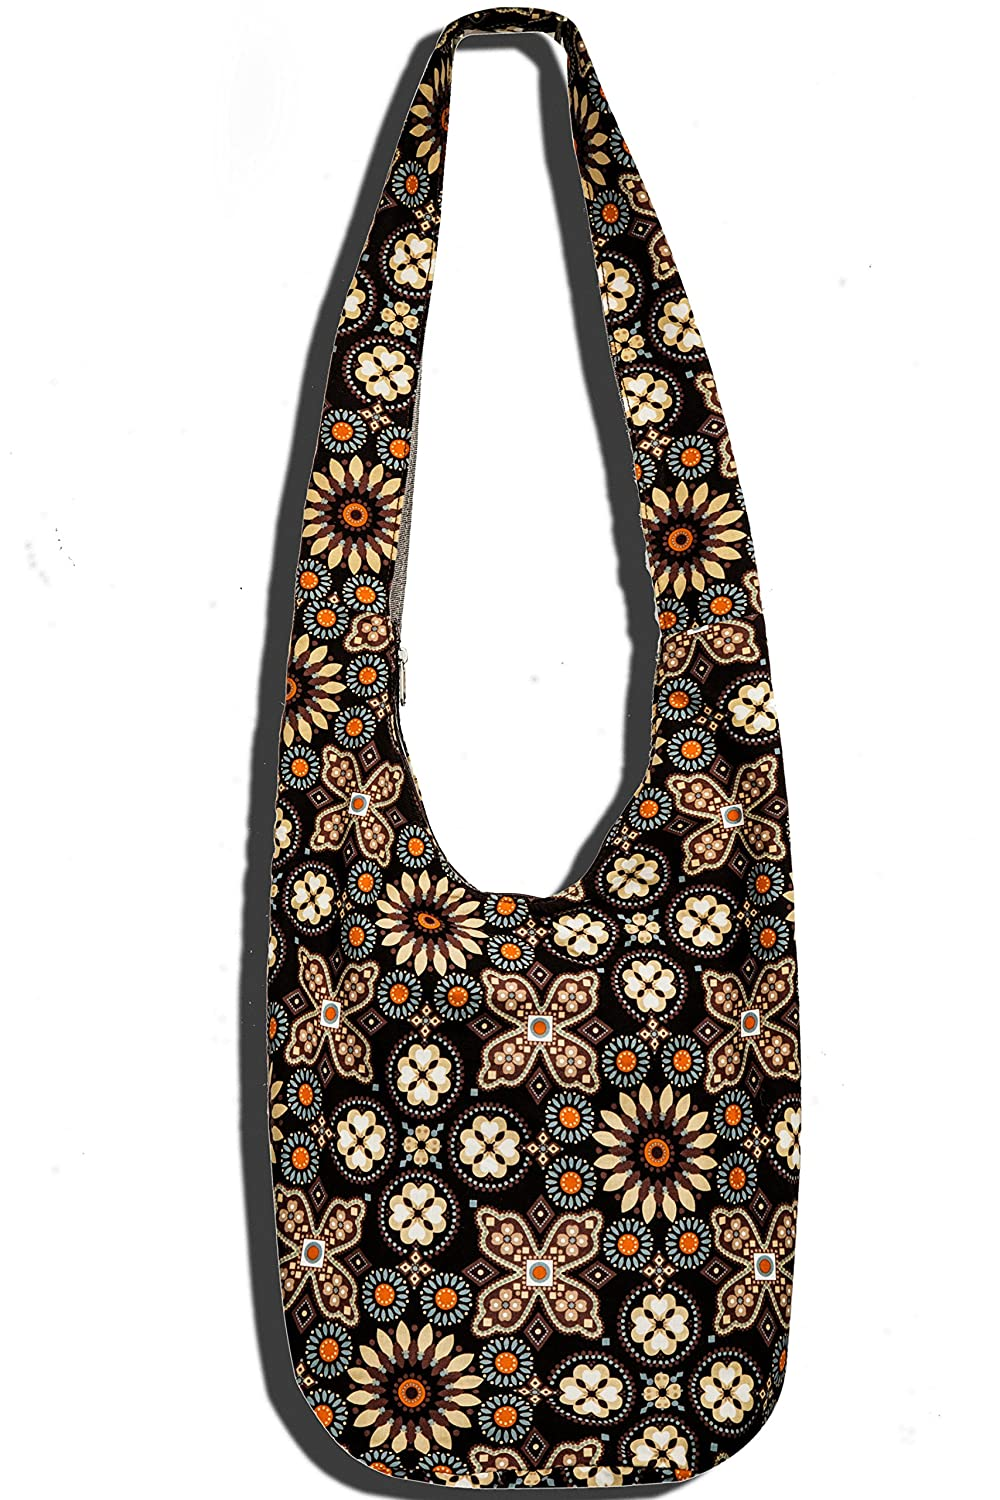 Hippie Crossbody Bag Thai Top Zip Hobo Sling Bag Handmade Hipster Messenger Bag Queen-026-217